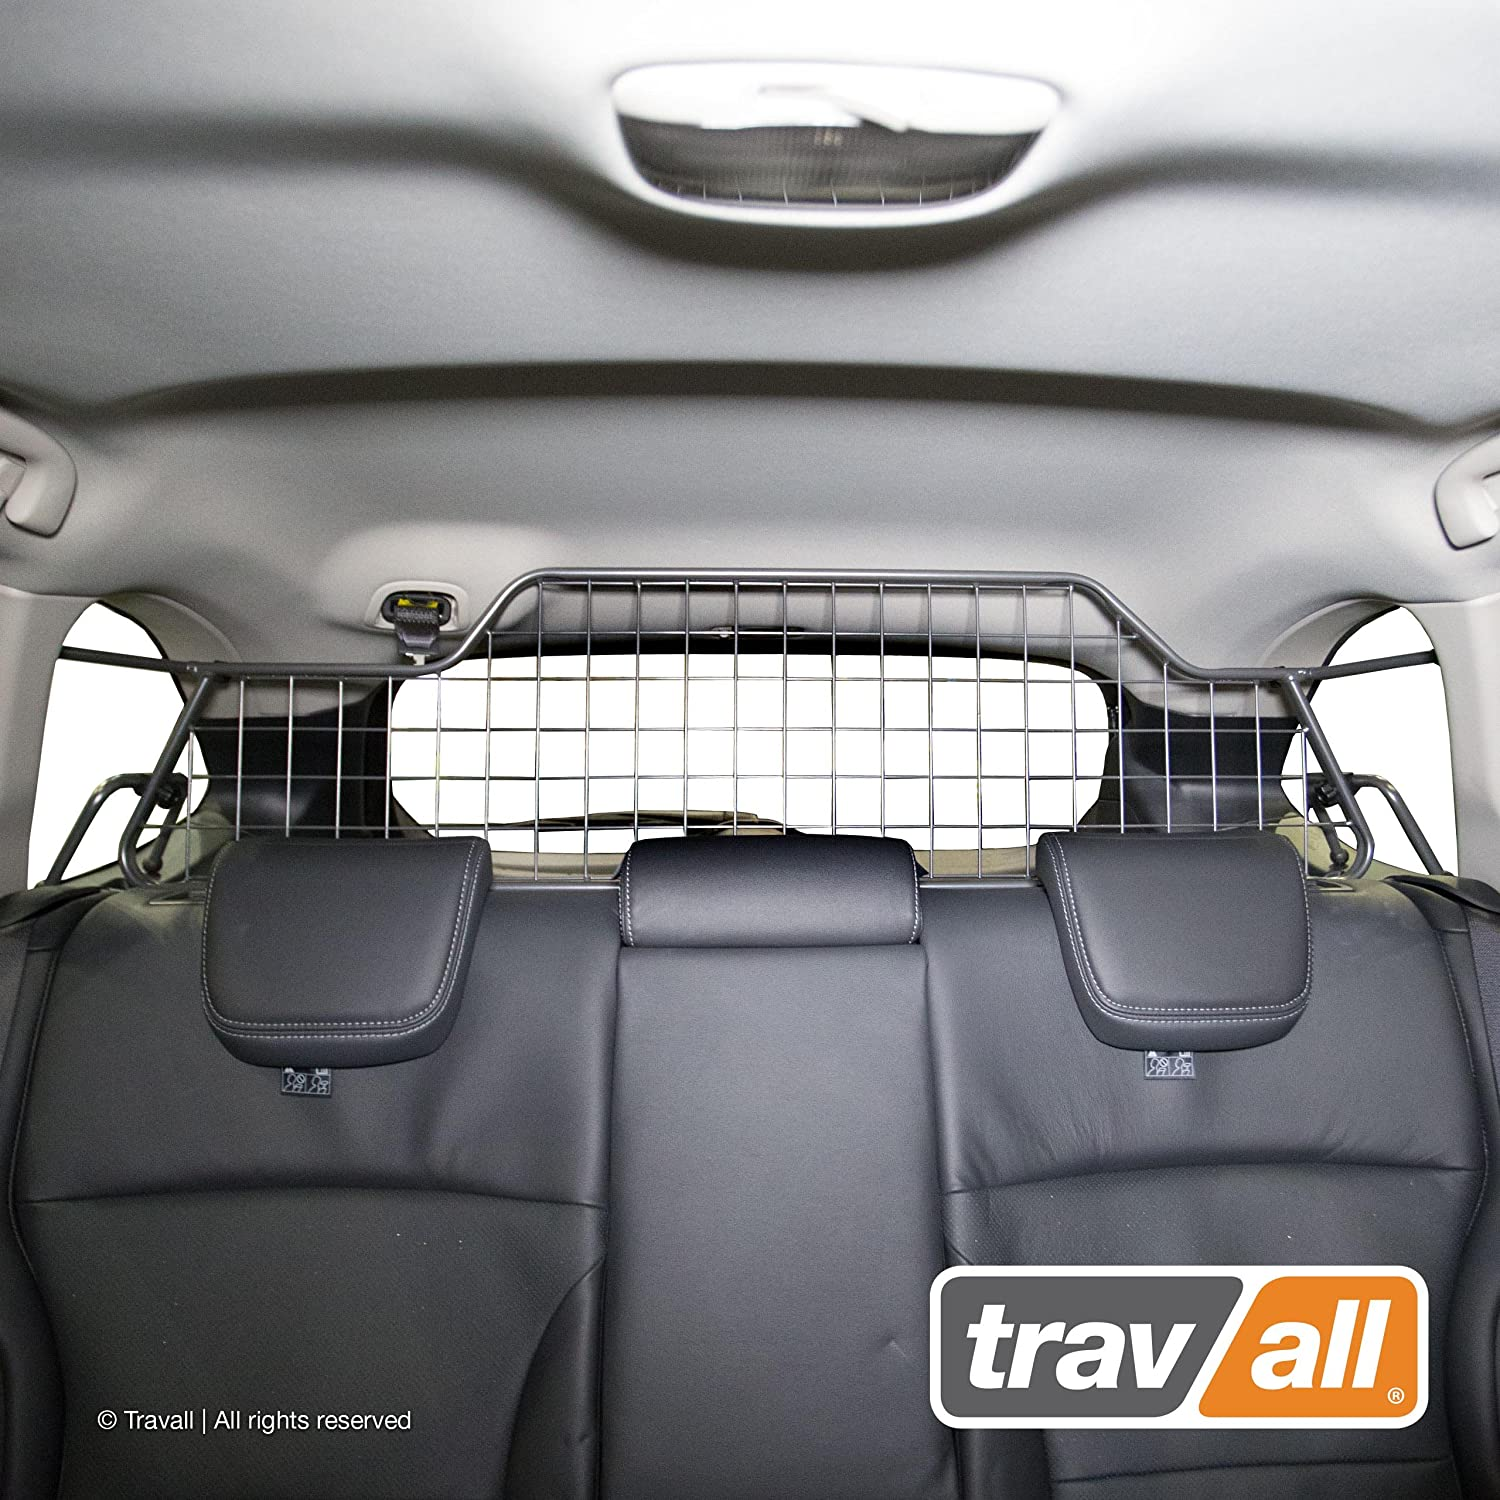 Travall Guard For Subaru Outback 2014 Current Tdg1476 2005 Seat Wiring Rattle Free Luggage And Pet Barrier Supplies